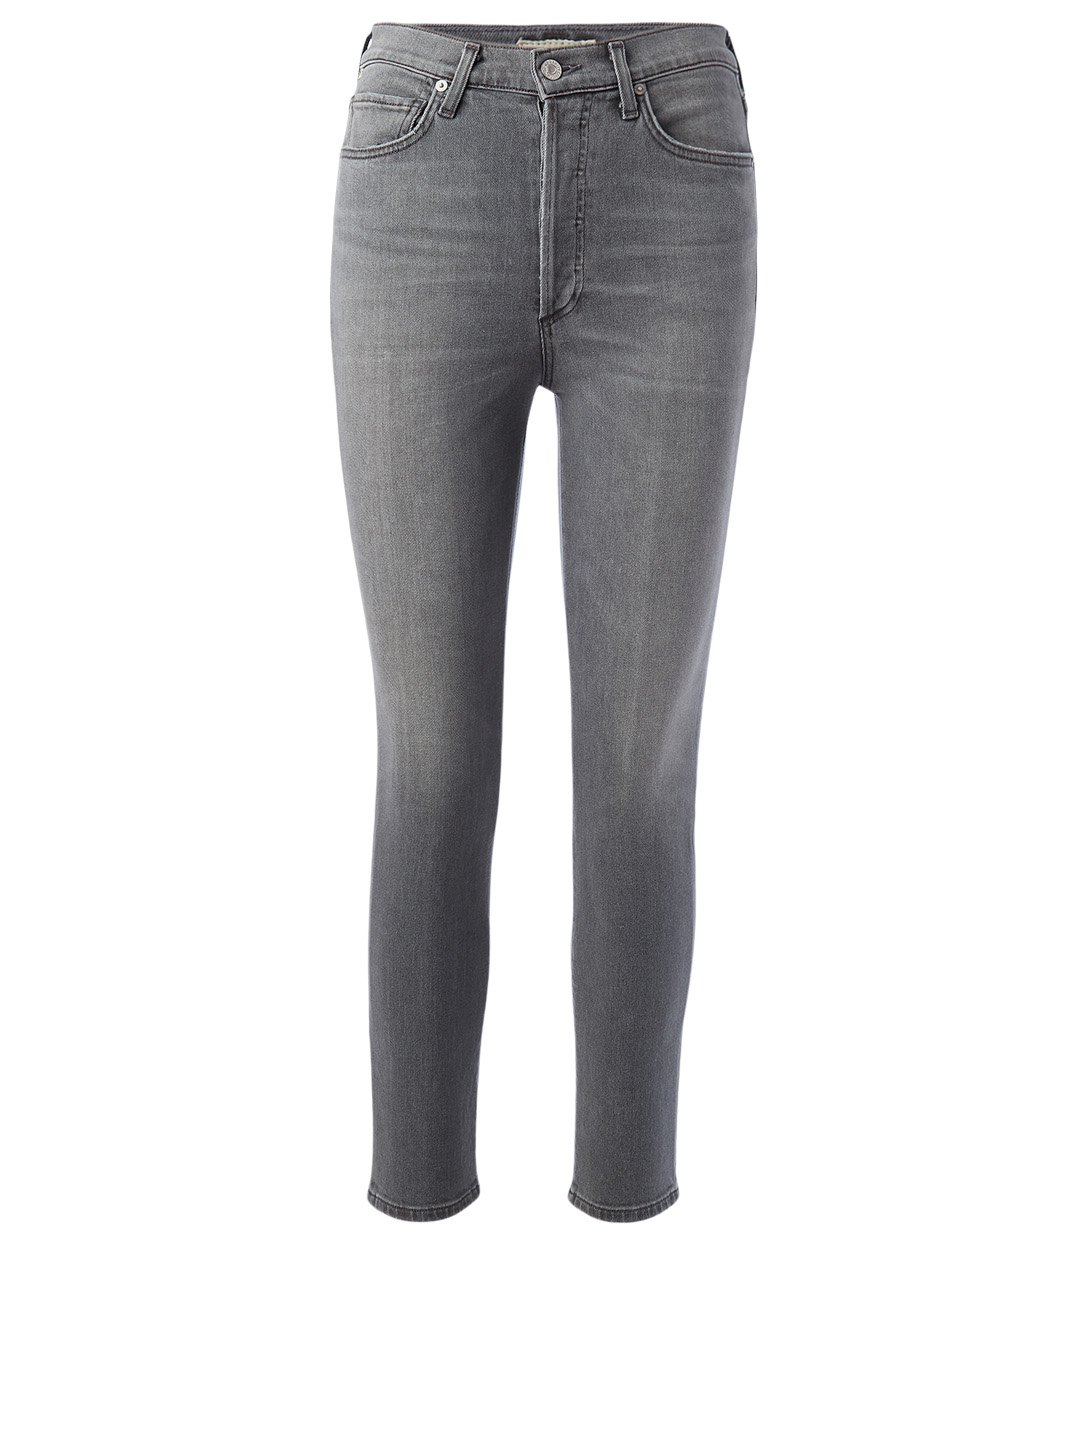 CITIZENS OF HUMANITY Olivia High-Waisted Slim Jeans Women's Grey